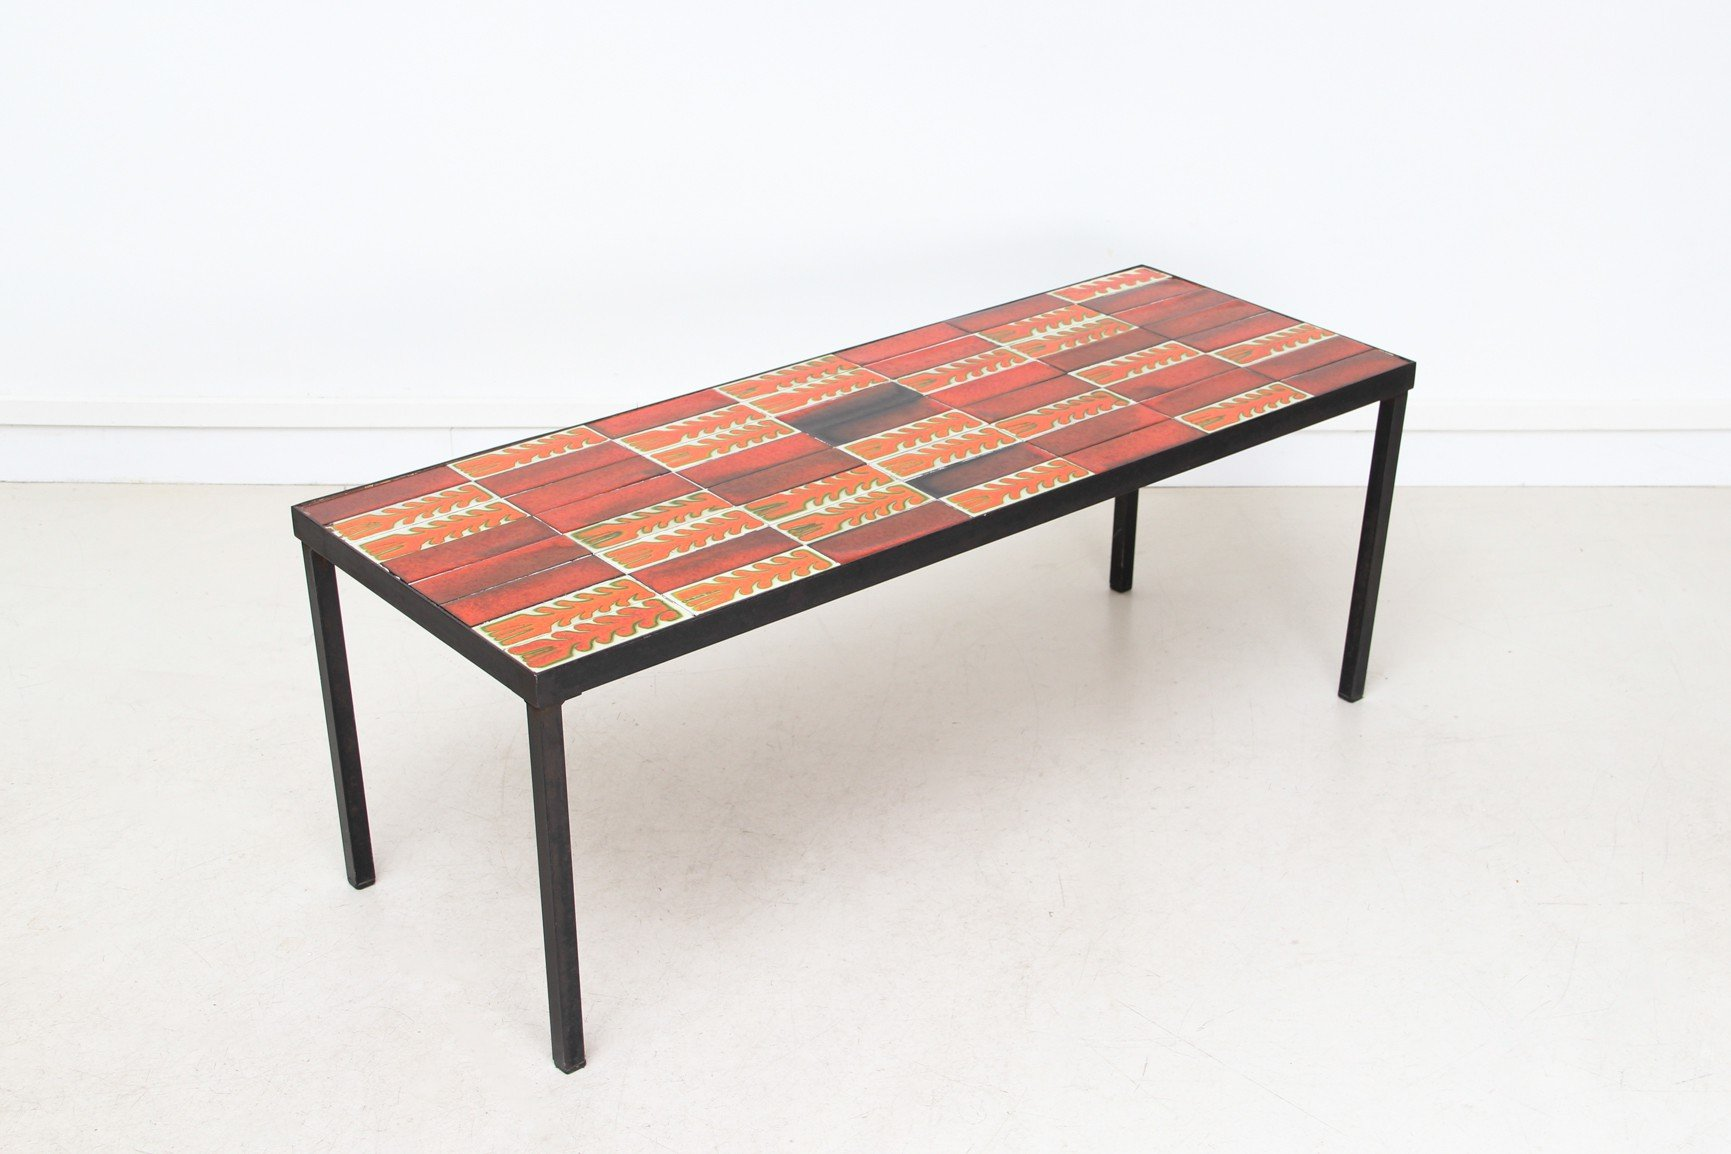 Vallauris ceramic coffee table roger capron 1950s - Table basse scandinave annee 50 ...